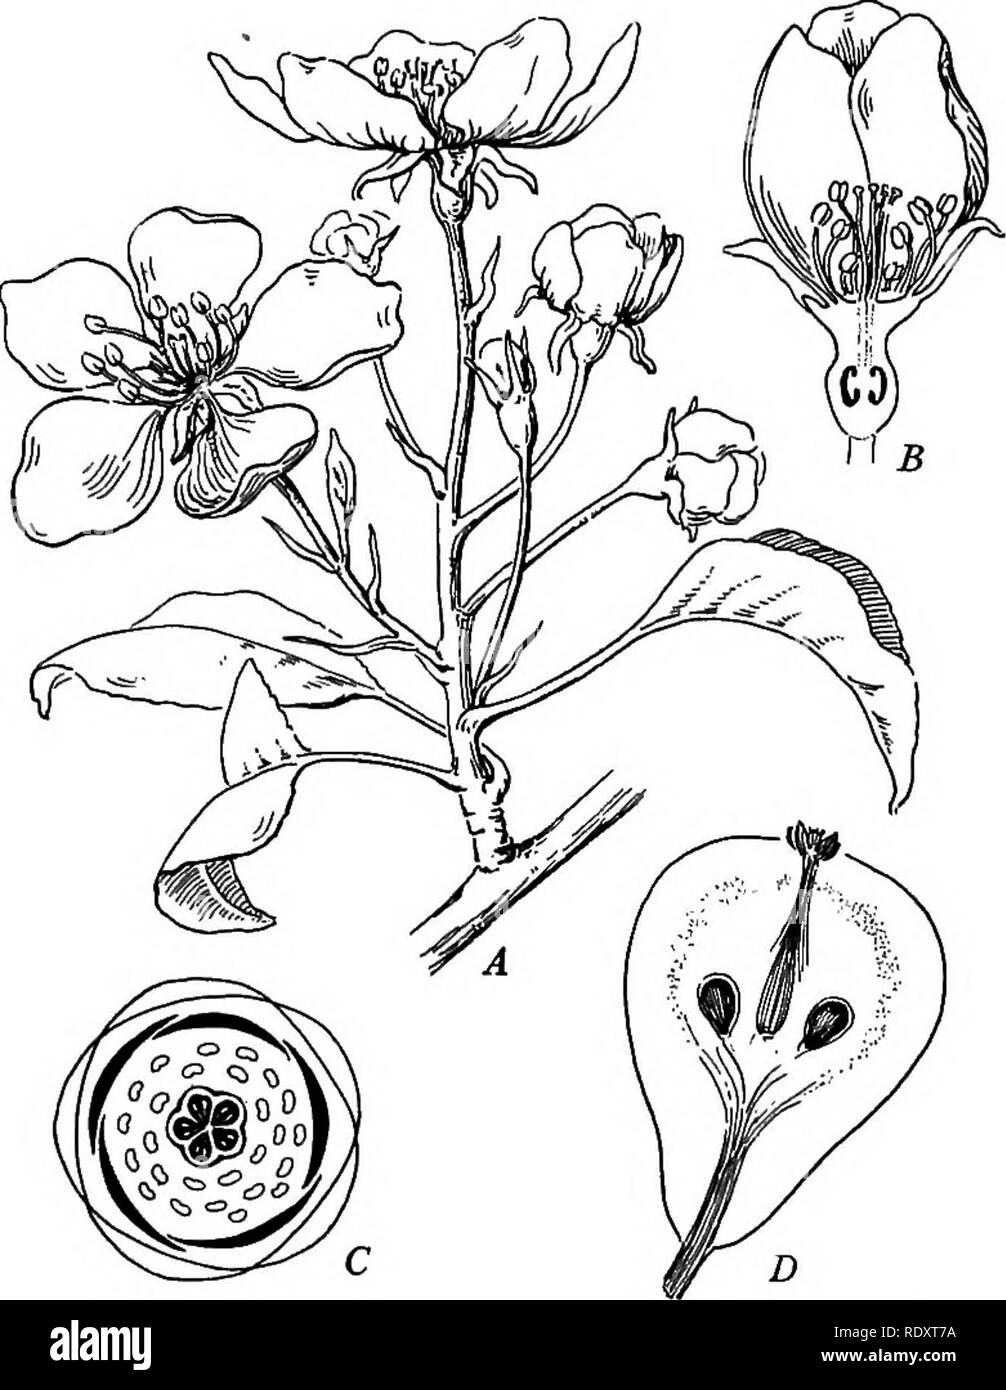 . Plant life and plant uses; an elementary textbook, a foundation for the study of agriculture, domestic science or college botany. Botany. VARIATIONS IN STRUCTURE 293 both definite and indefinite numbers. Sometimes the numbers are both definite and indefinite in the same flower. Thus a flower may have a definite number of petals,. Fig. 117. — A, a flower-bearing twig of pear. B, lengthwise section through the flower. C, diagram, showing the number and relation of the flower parts as re- vealed by a cross section. D, lengthwise section through the fruit. for example, along with an indefinite n - Stock Image